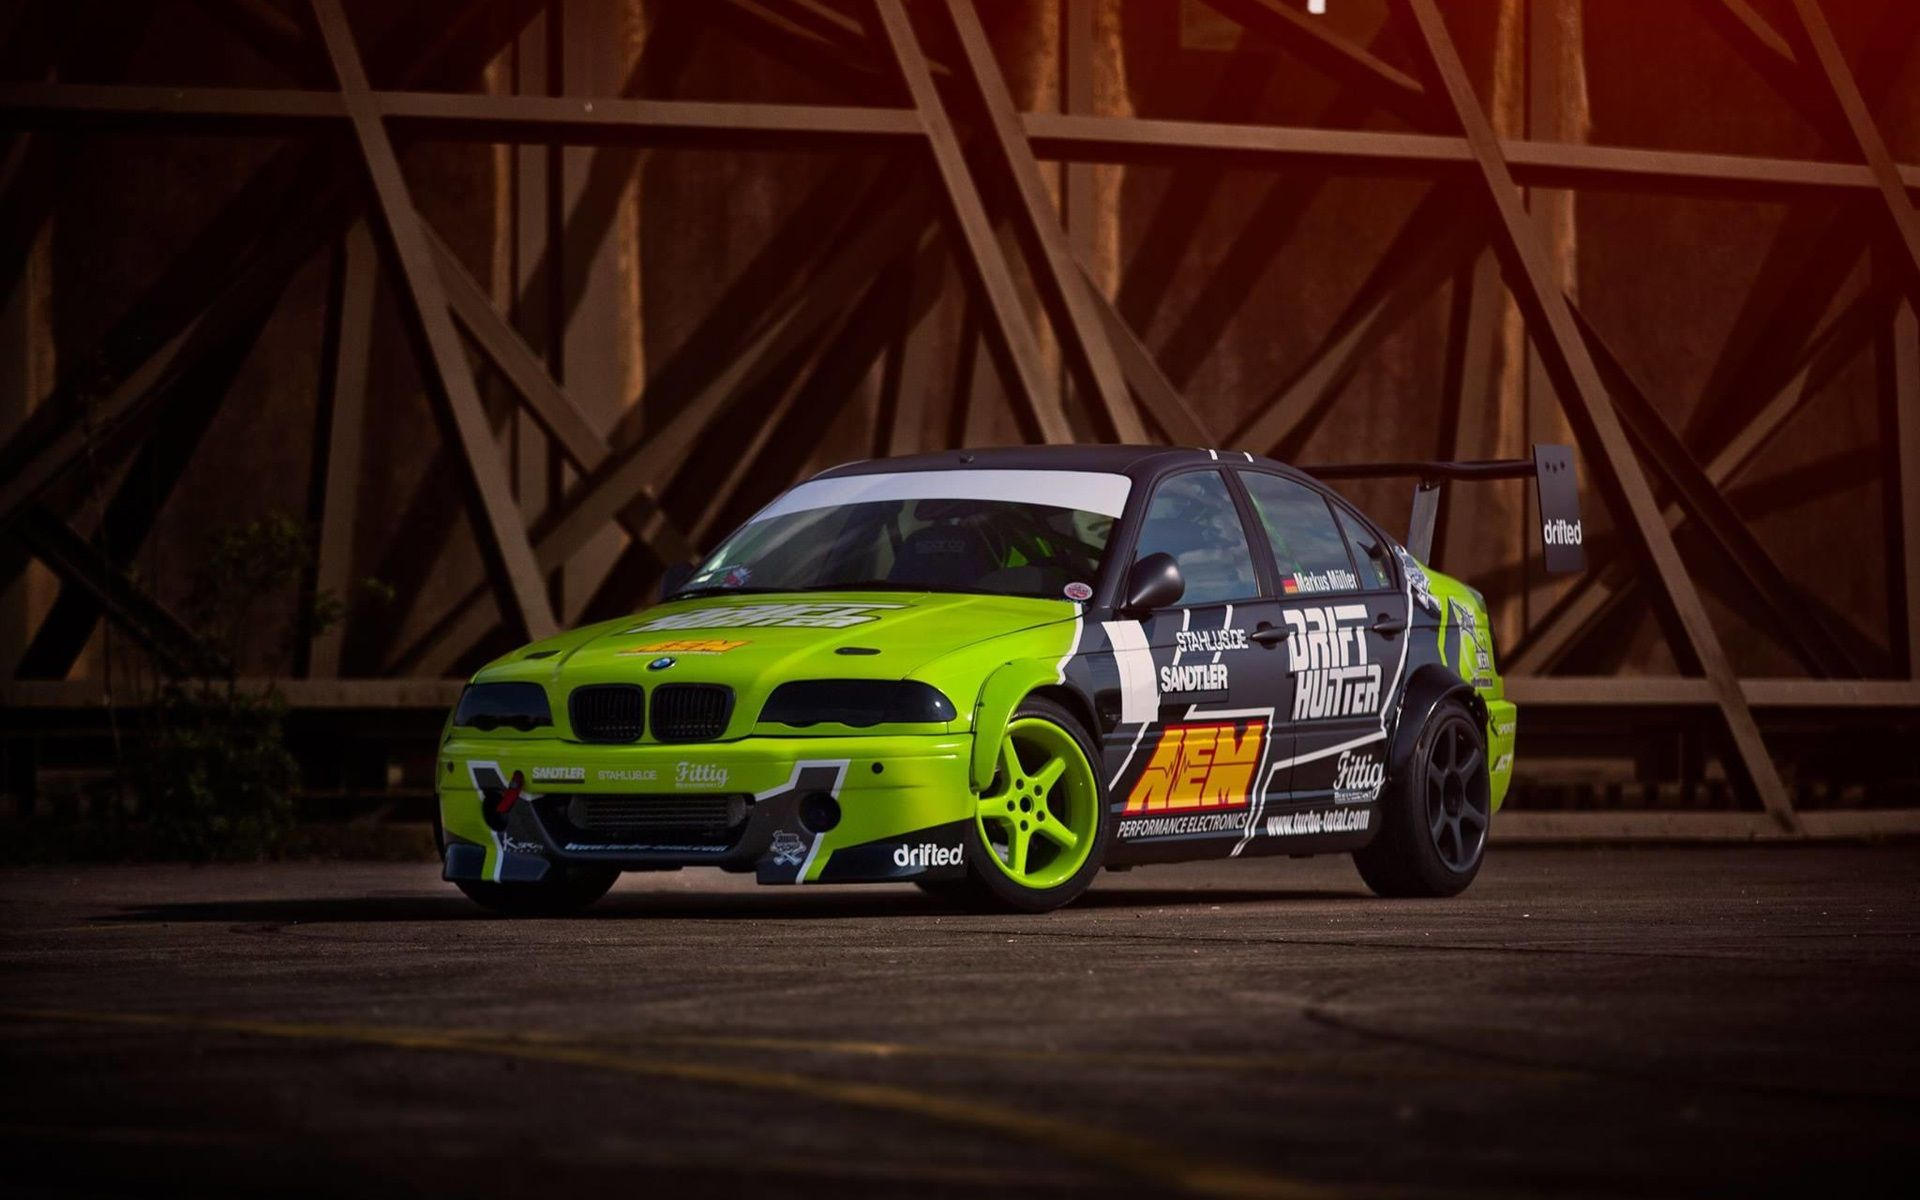 These Are 5 Images About Drift Car Wallpaper For Androiddownload Drift Car Wallpaper For Android Hd Wallpaper Freedownload Car Wallpapers Android Wallpaper Car